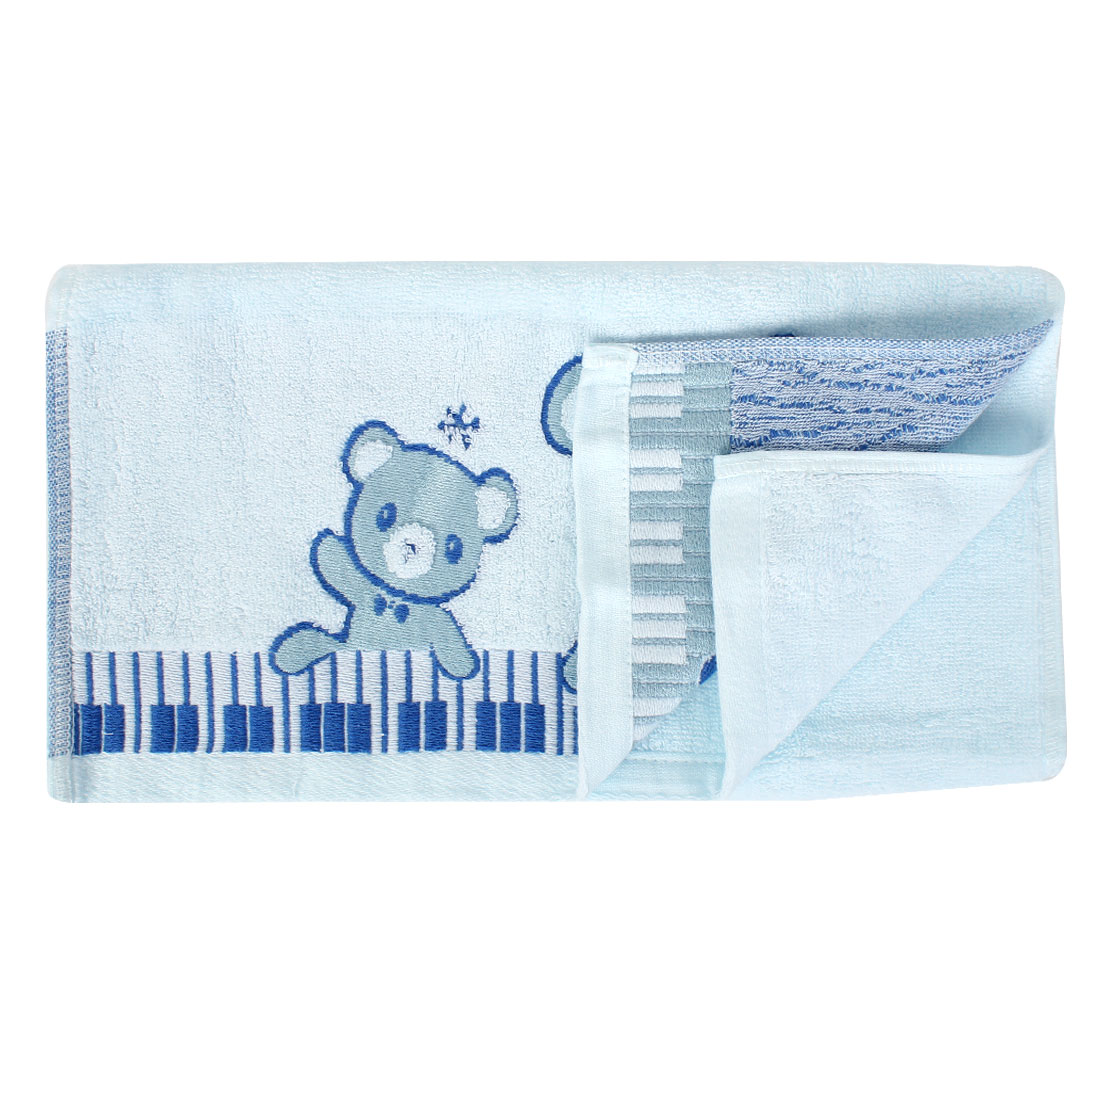 Cotton Blend Bear Pattern Shower Bath Towel 75cm x 34cm Light Blue